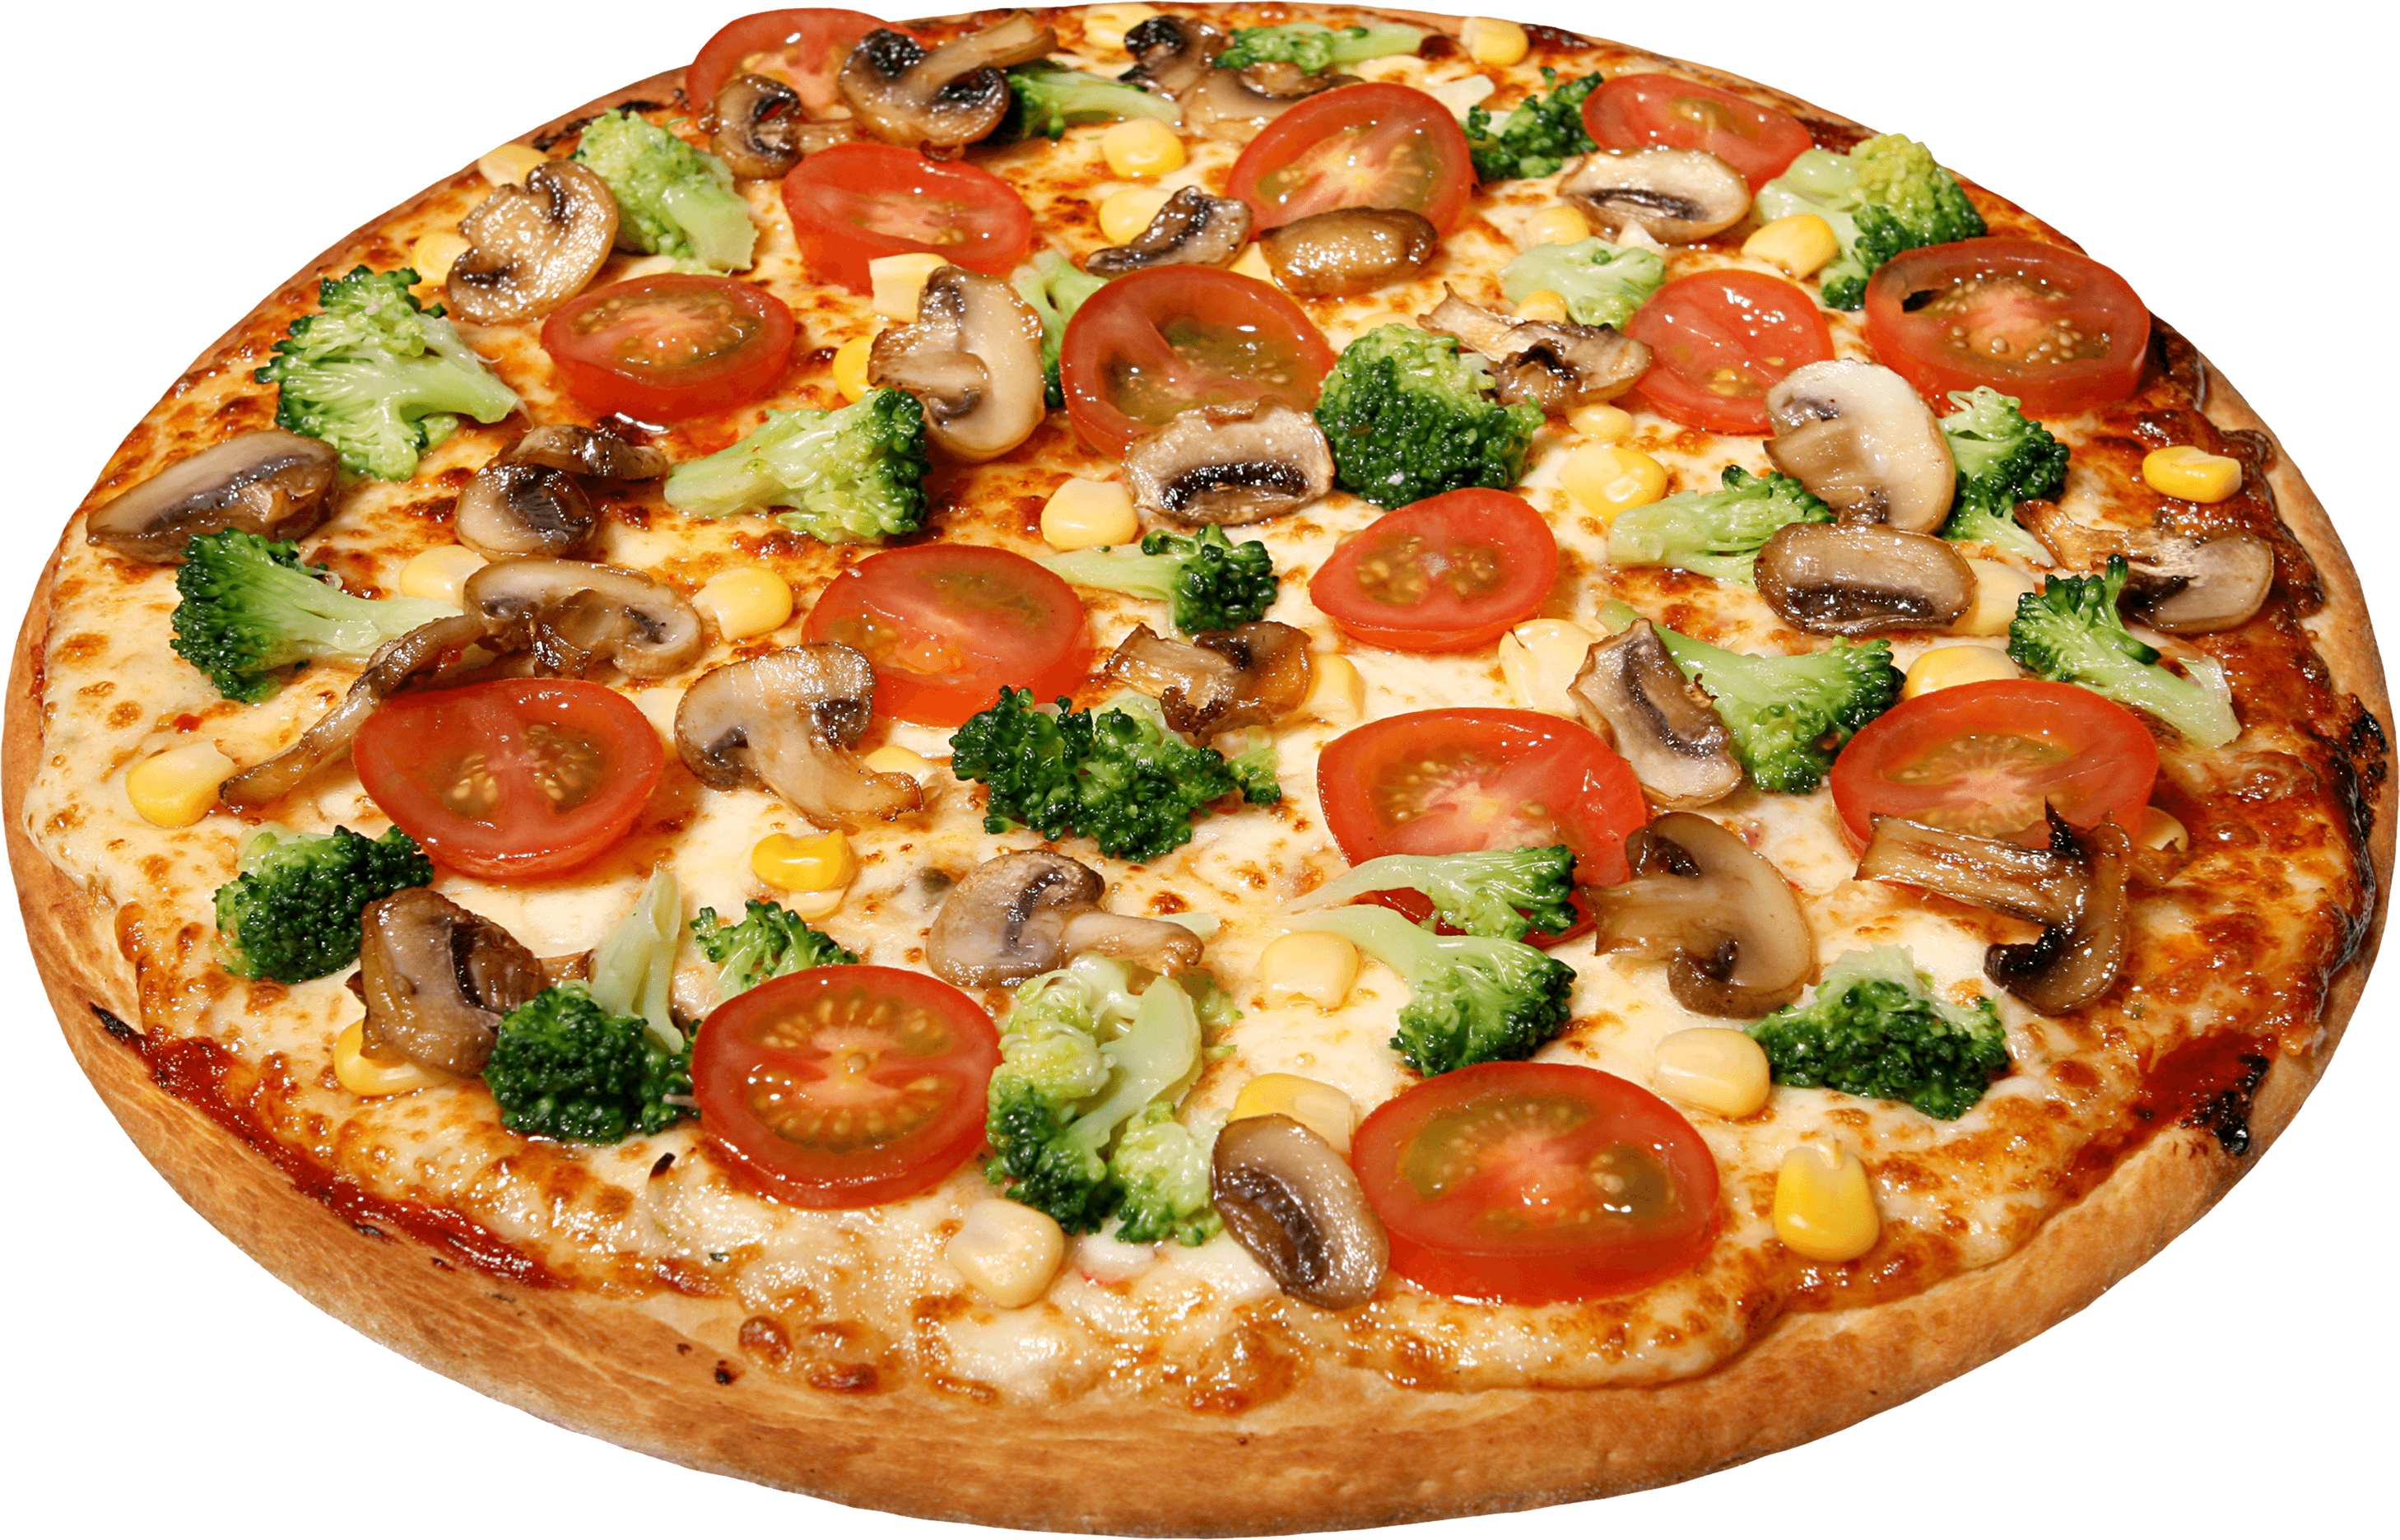 Italian clipart peperoni pizza. Large with tomatoes transparent